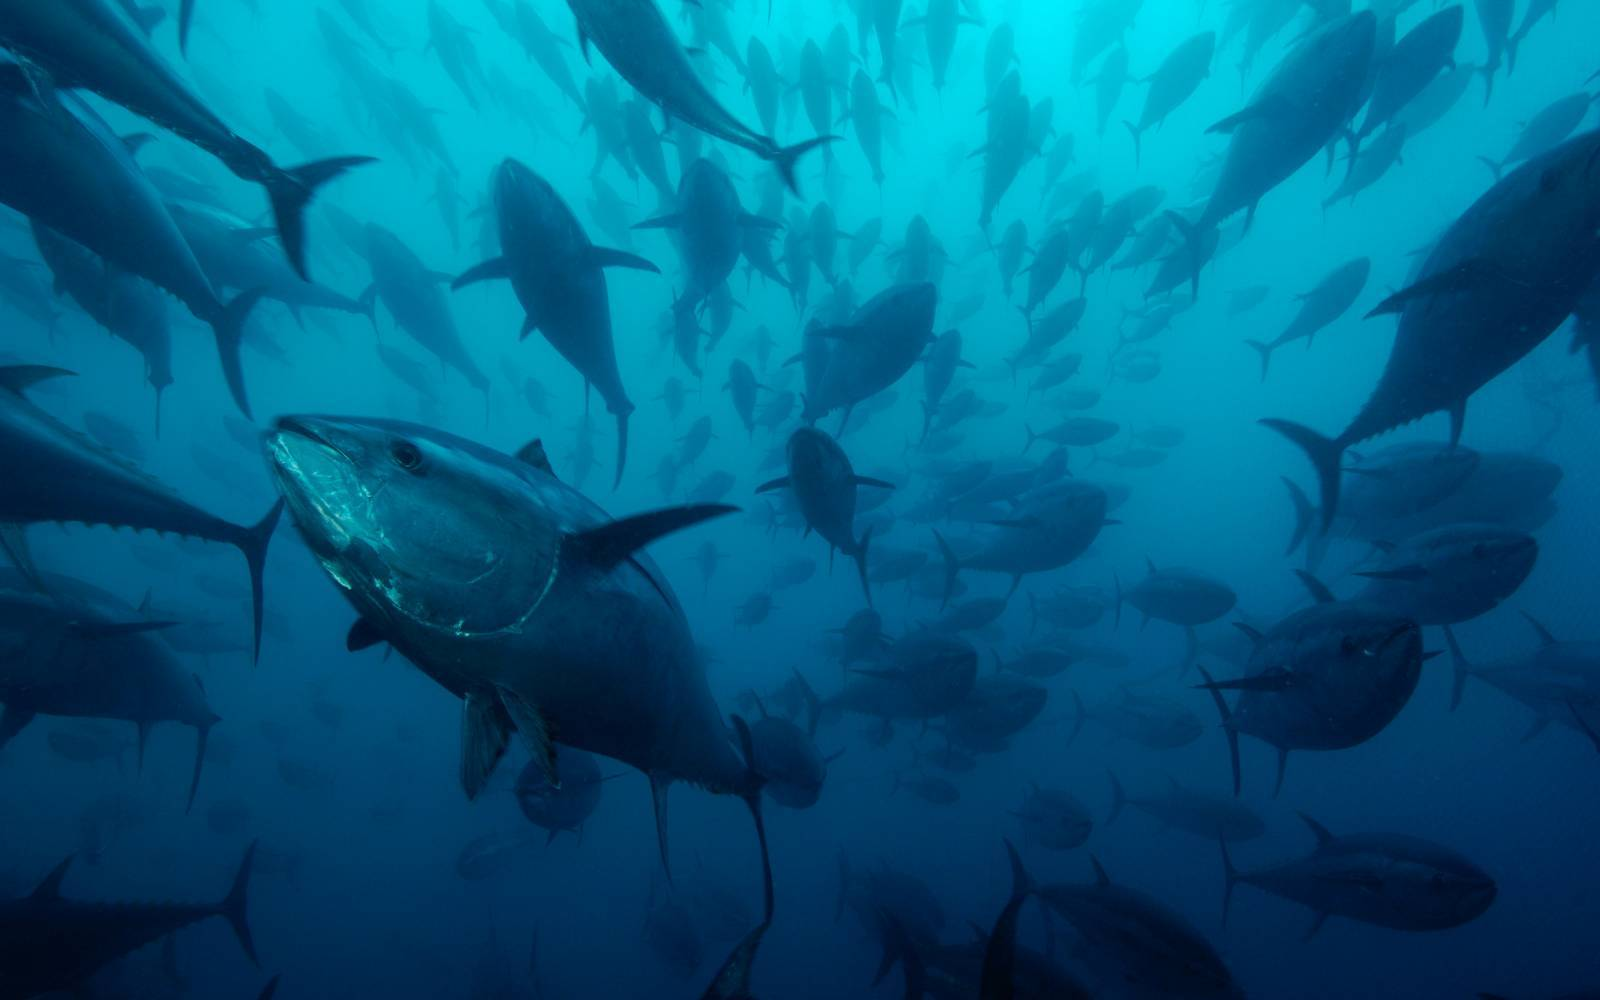 Northern bluefin tuna (Thunnus thynnus) in tuna ranching company's (Ecolo Fish) cages, being fattened for the sushi market, Mediterranean Sea, Spain